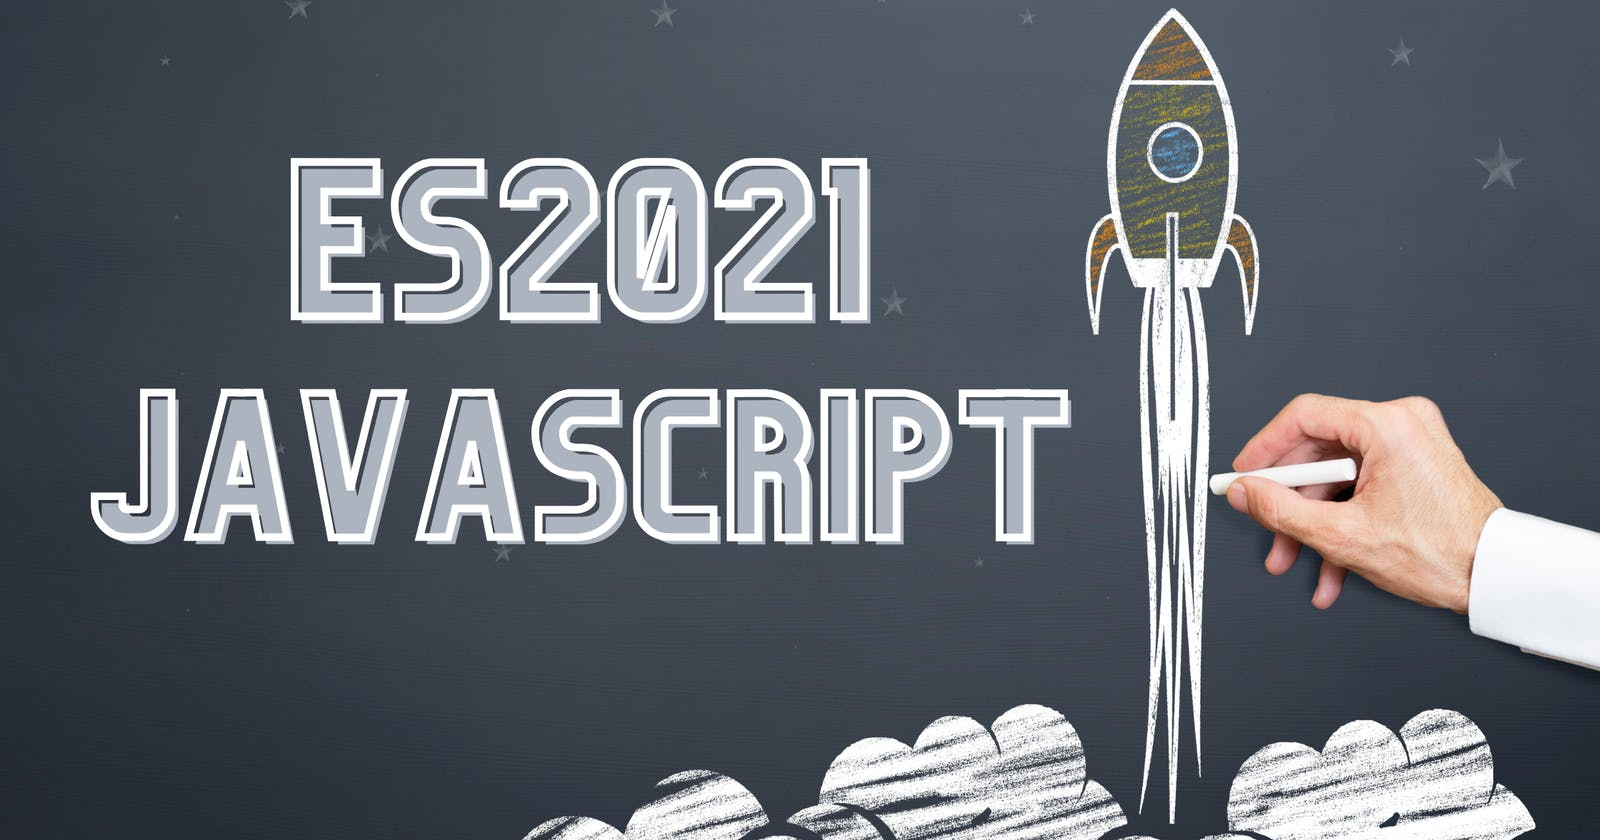 JS ES2021 - It's Almost Here